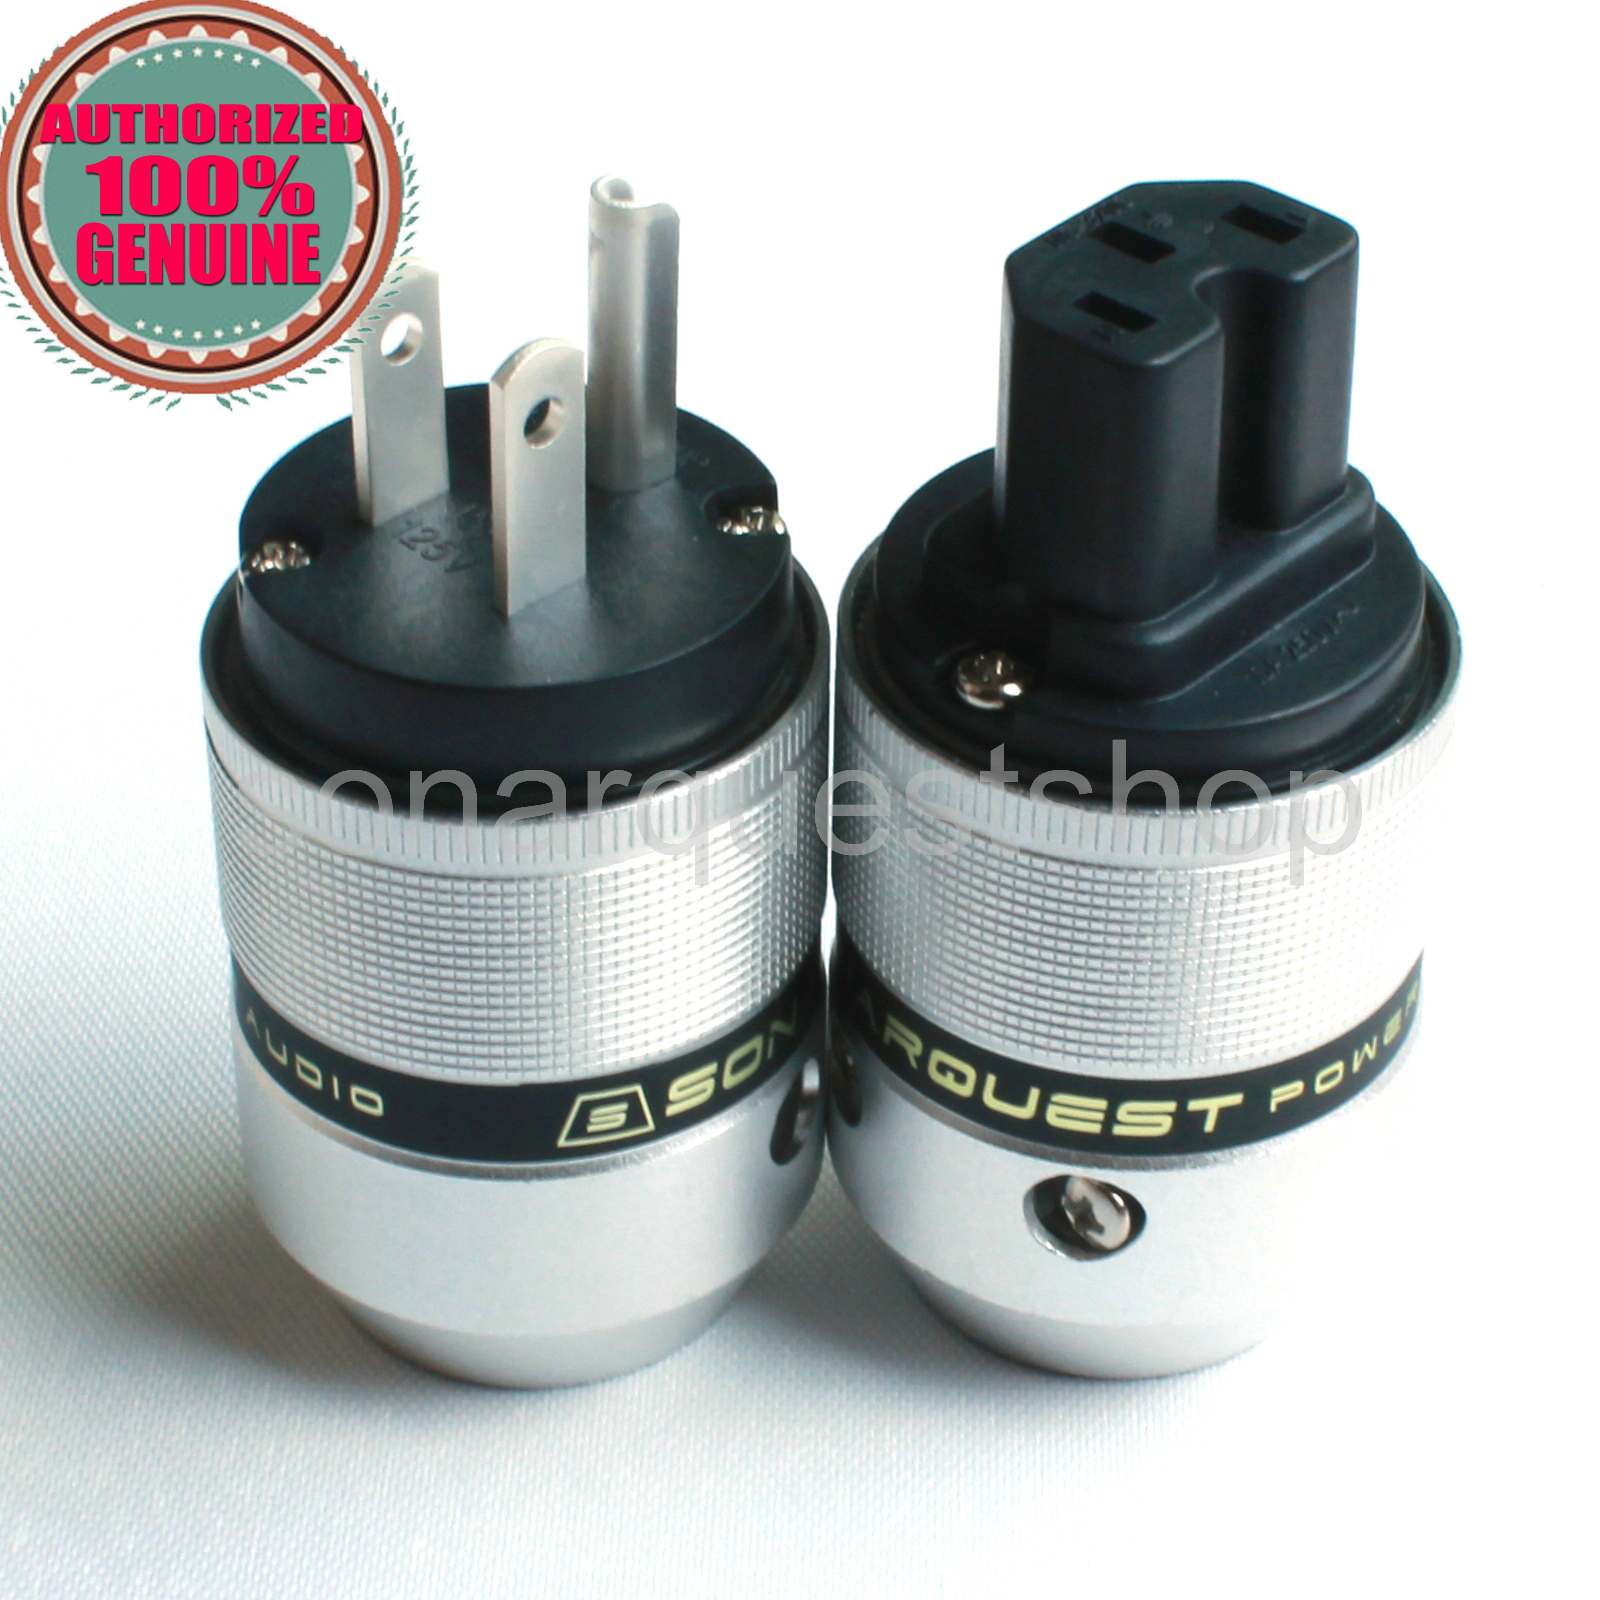 SONARQUEST P25 Ag(B) + C25 Ag(B) US silver Plated UP Black Aluminum alloy Power Plug & IEC Connector